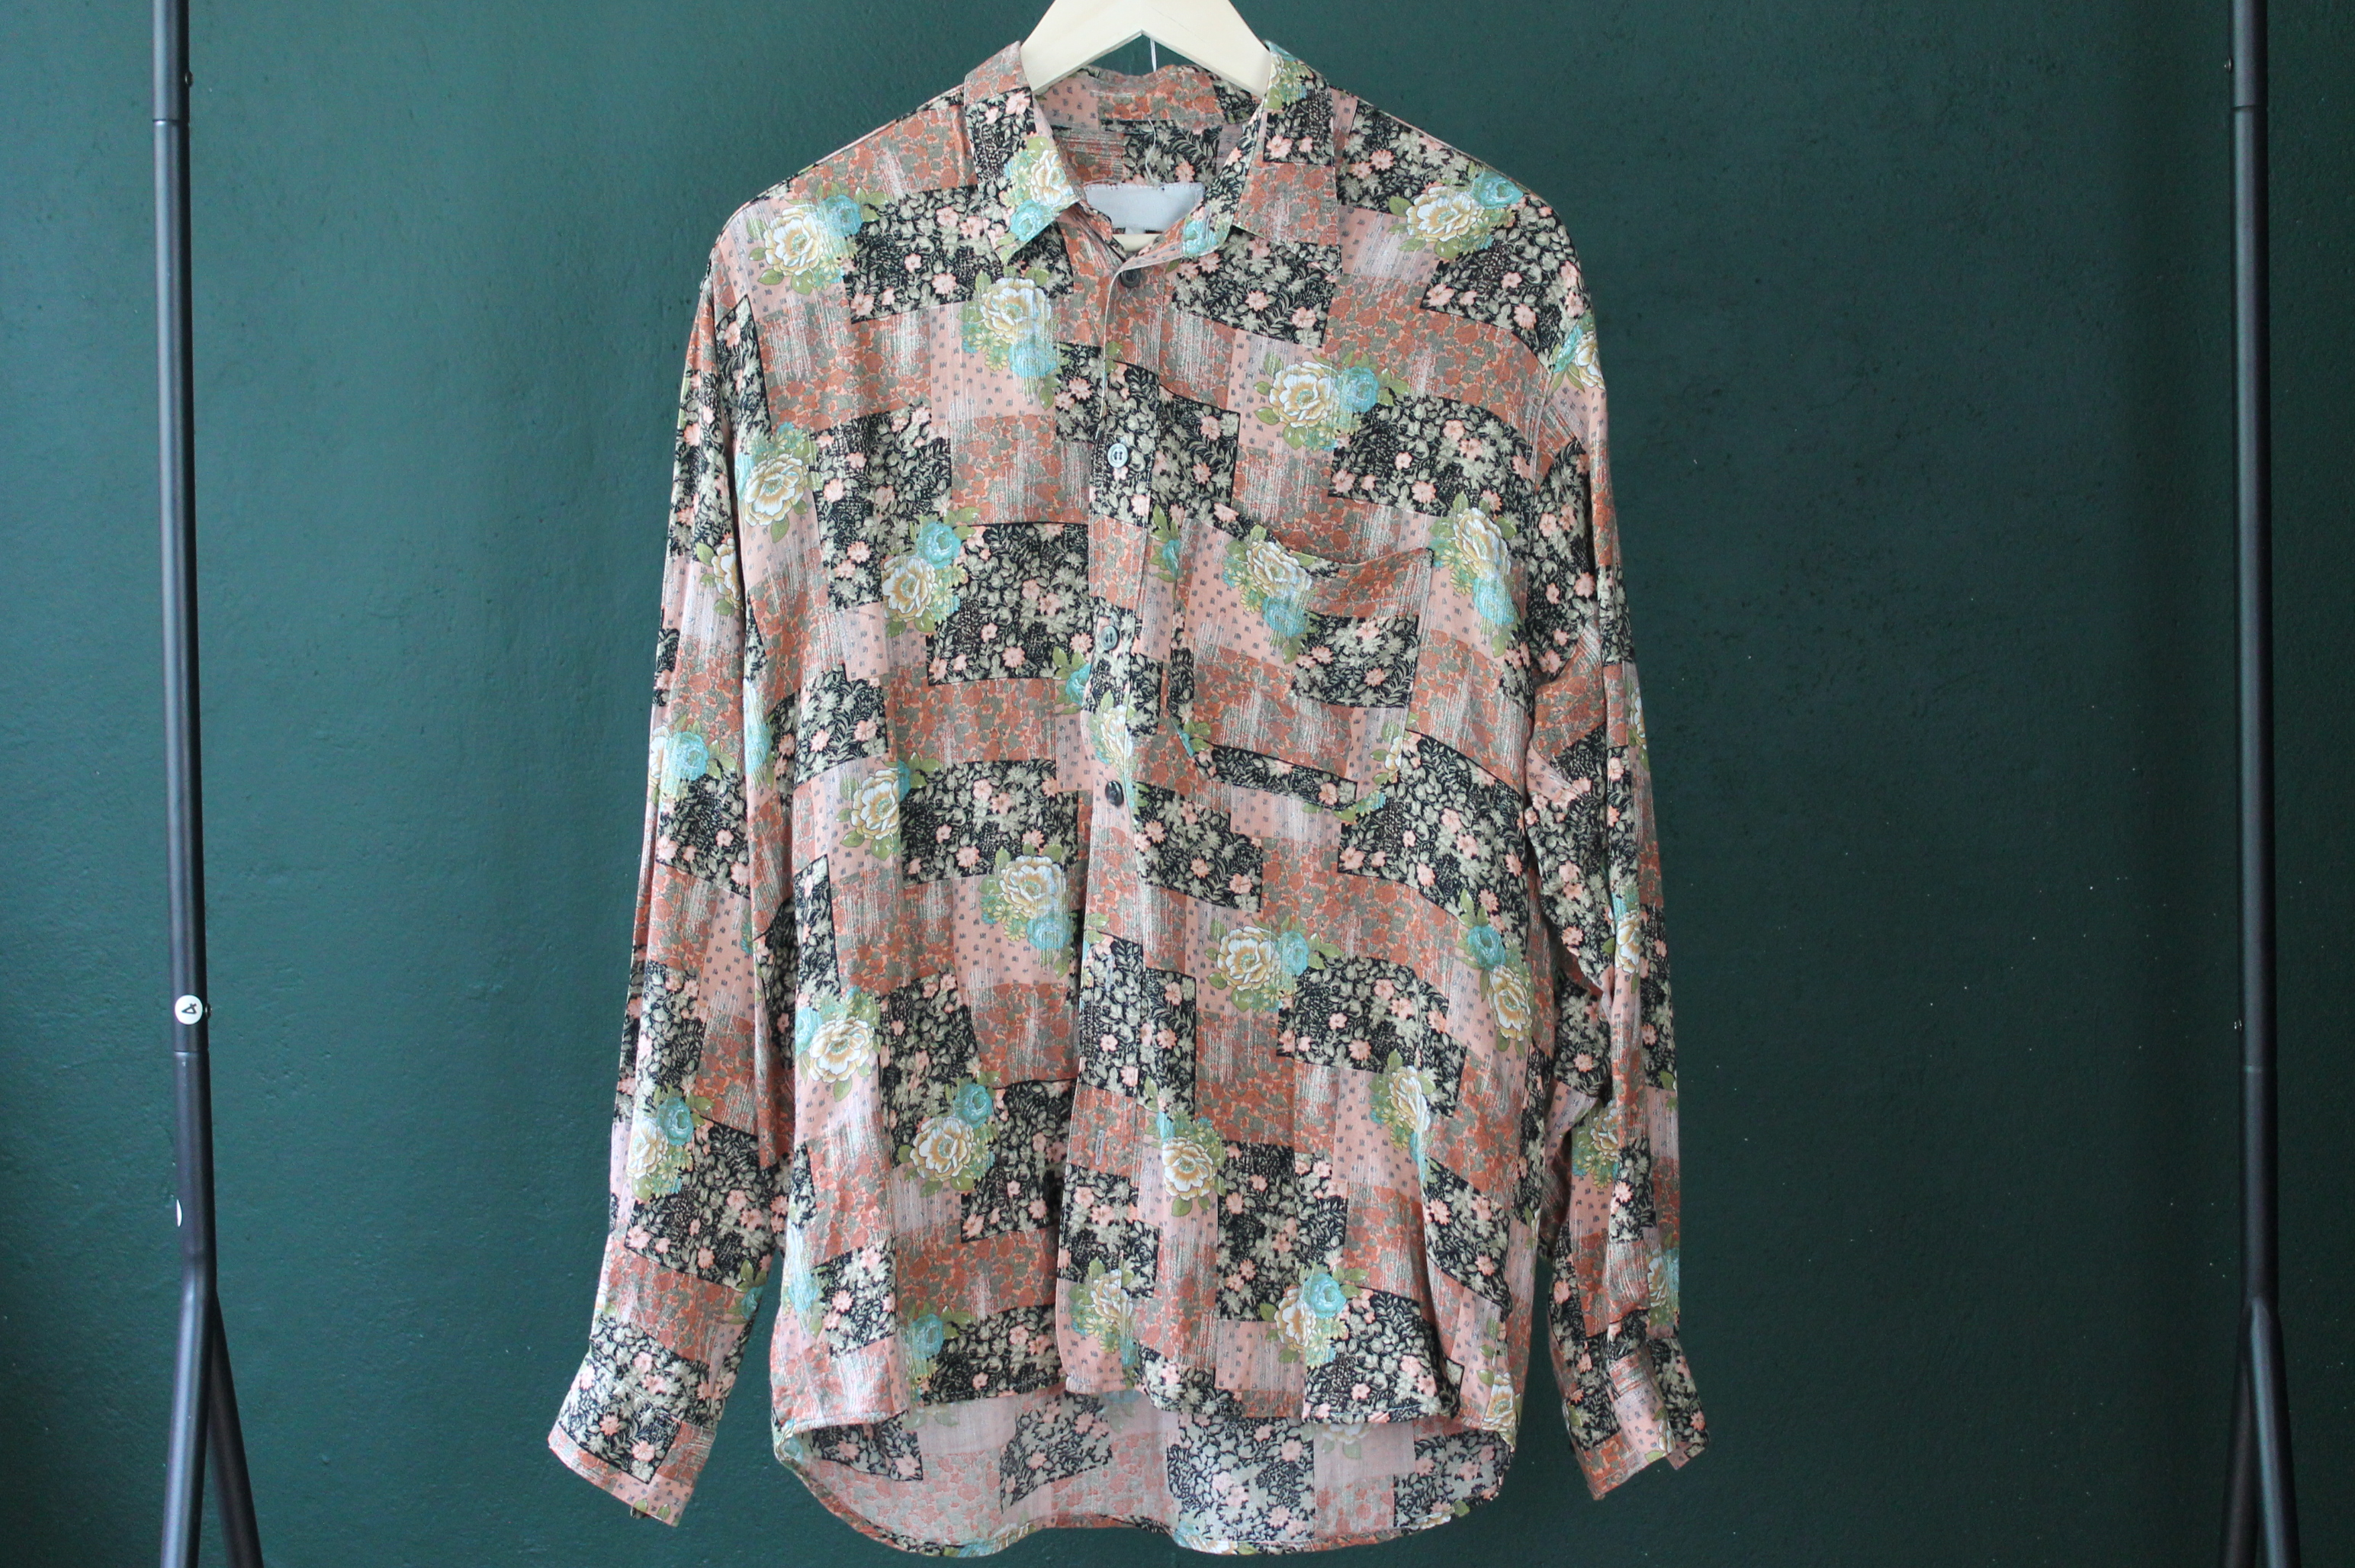 FLOWERS IN SQUARES size men L